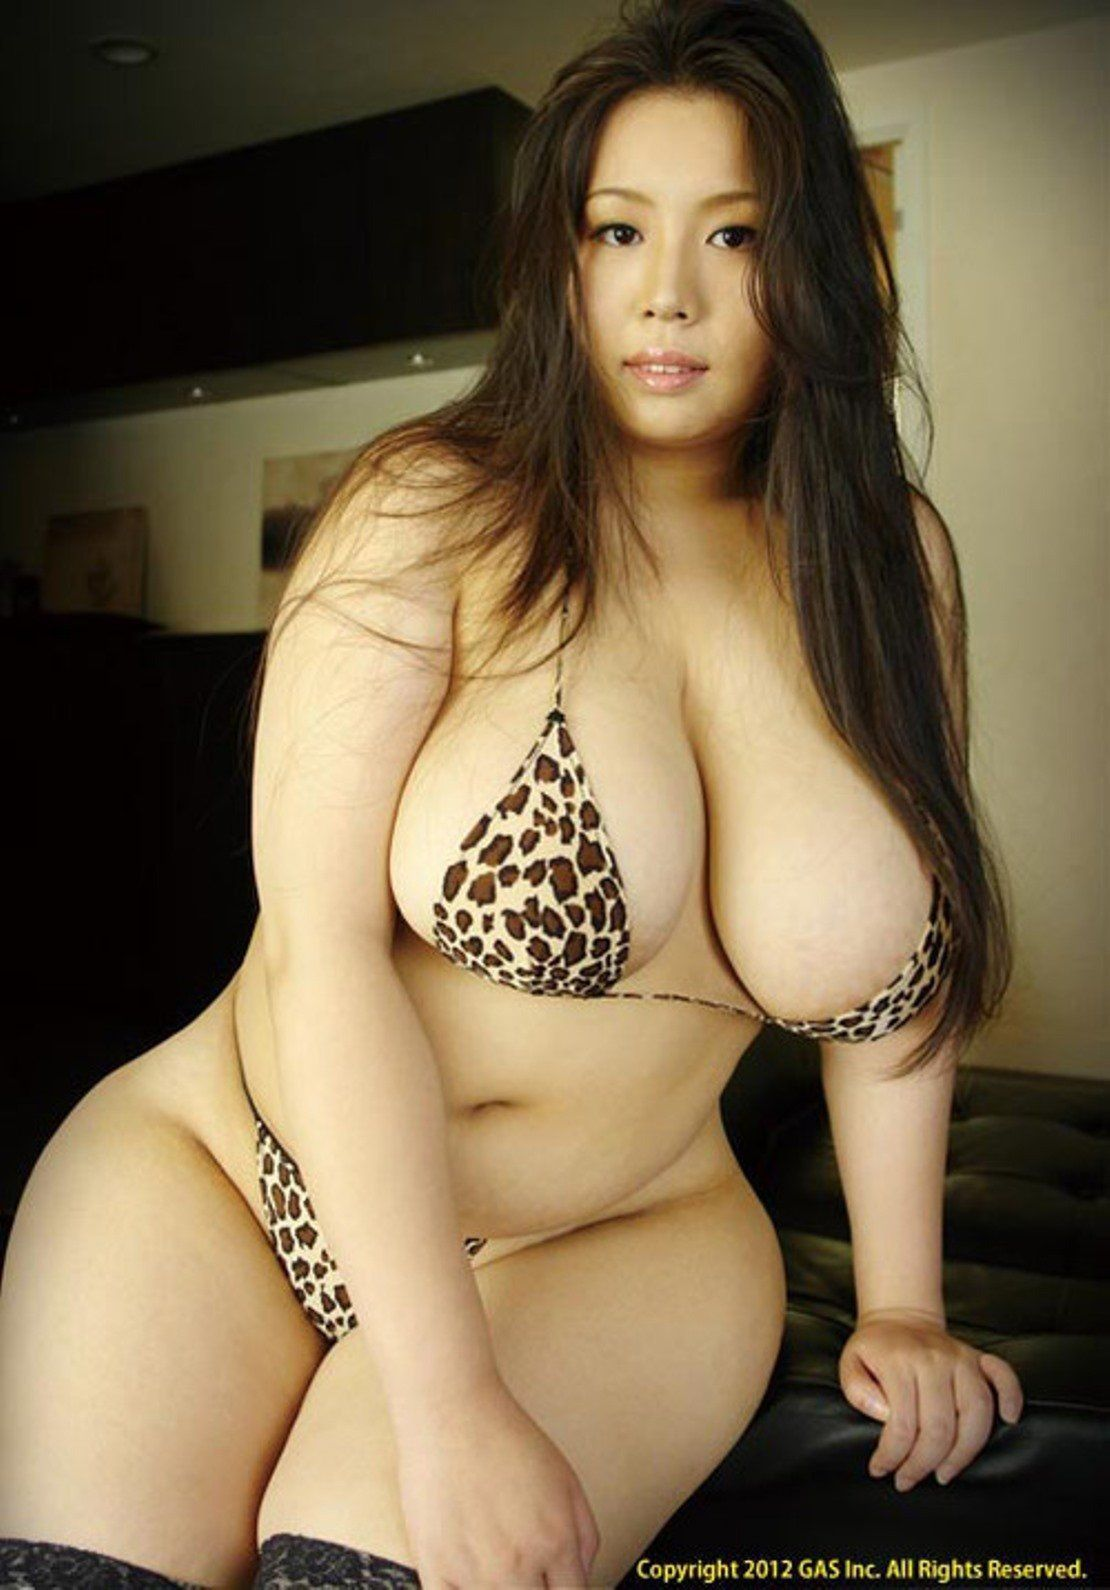 Chubby asian girl nude